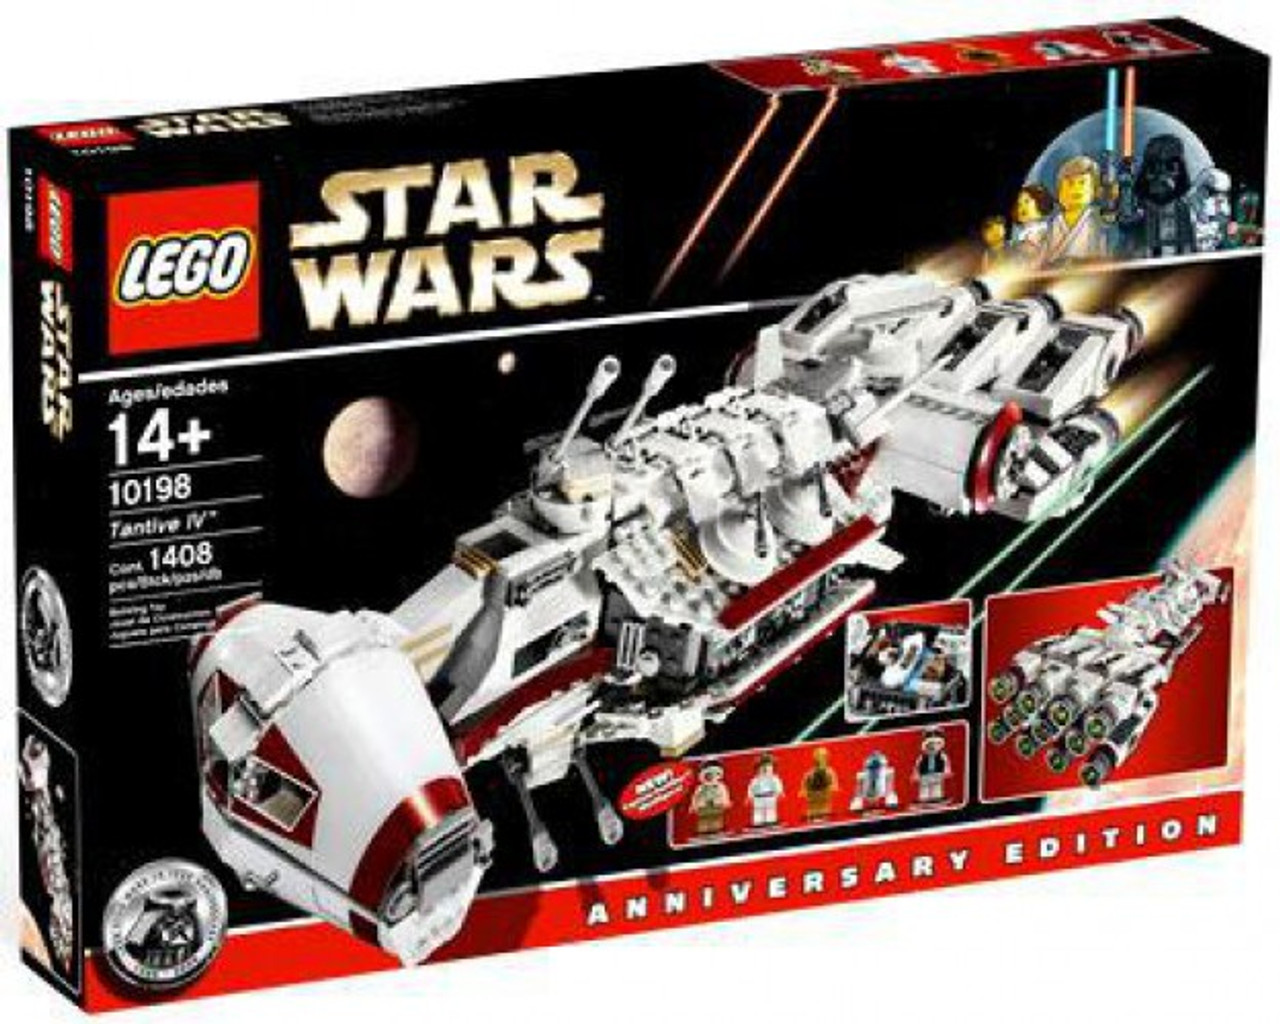 LEGO Star Wars A New Hope Tantive IV Exclusive Set 10198 - ToyWiz